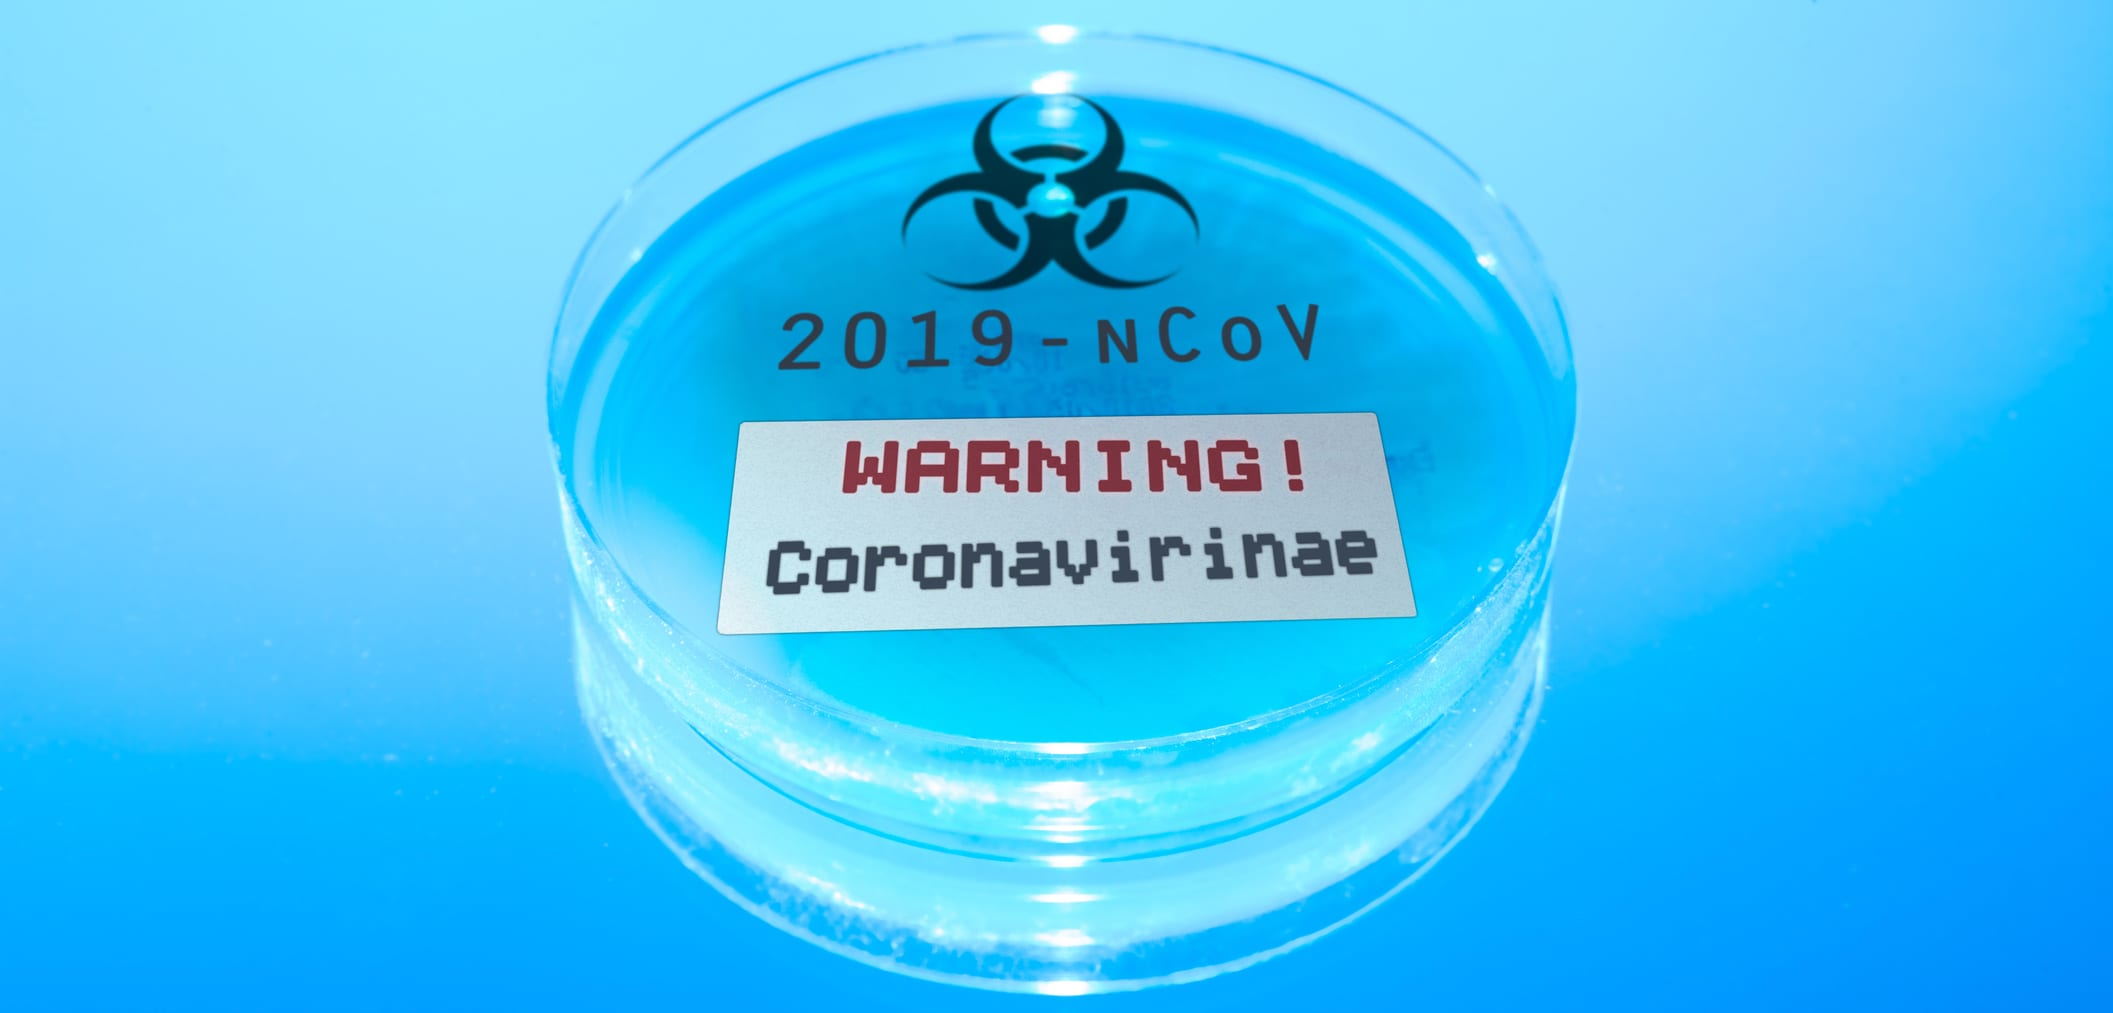 Offer Hands-free Care During the Coronavirus Outbreak